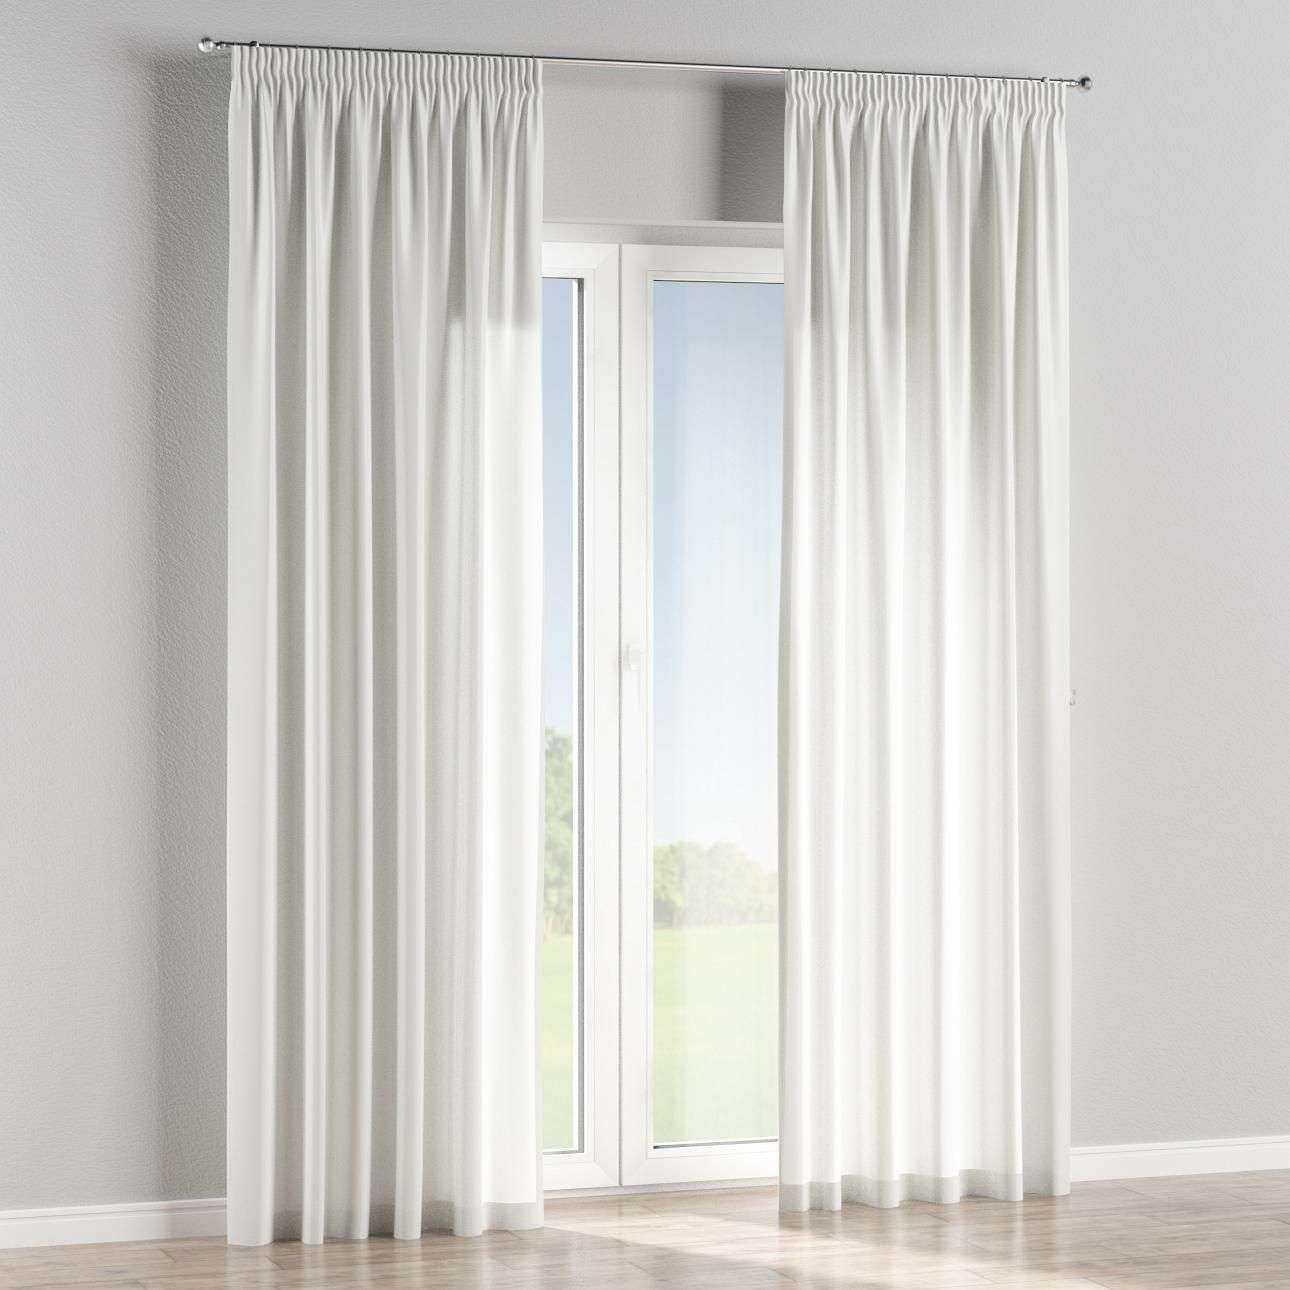 Pencil pleat lined curtains in collection SALE, fabric: 139-93